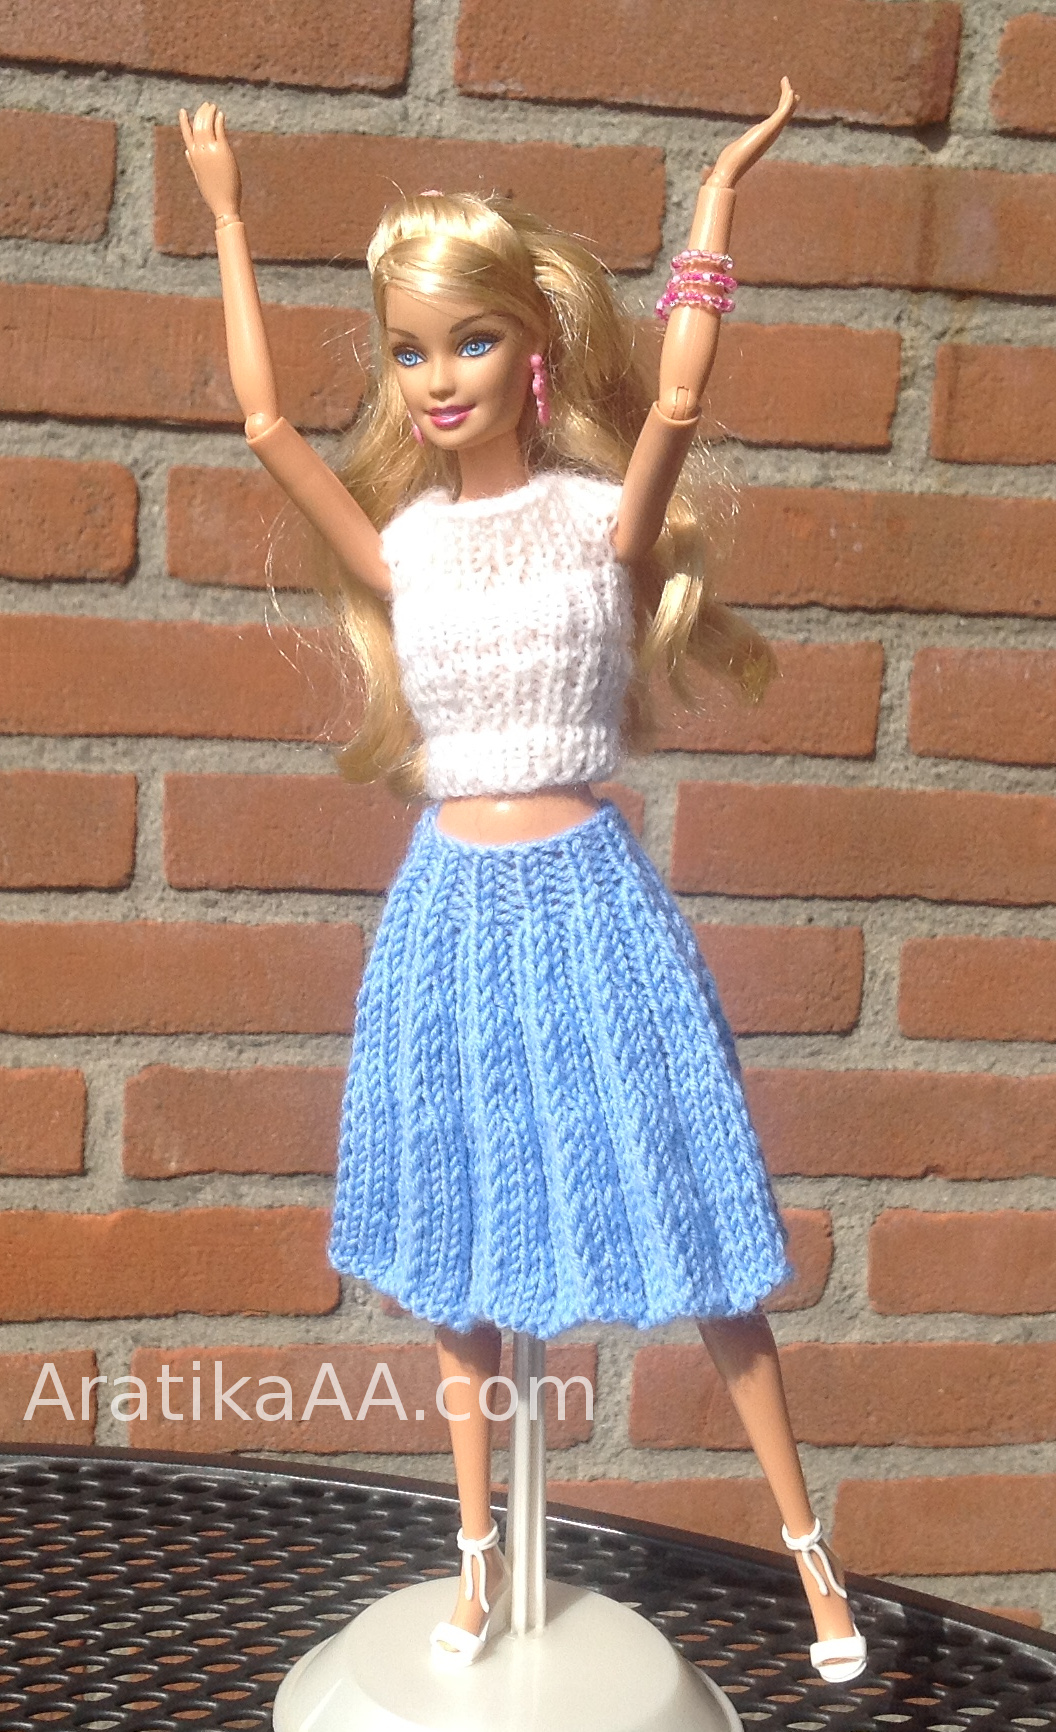 Knitted accordeon pleated skirt for Barbie doll